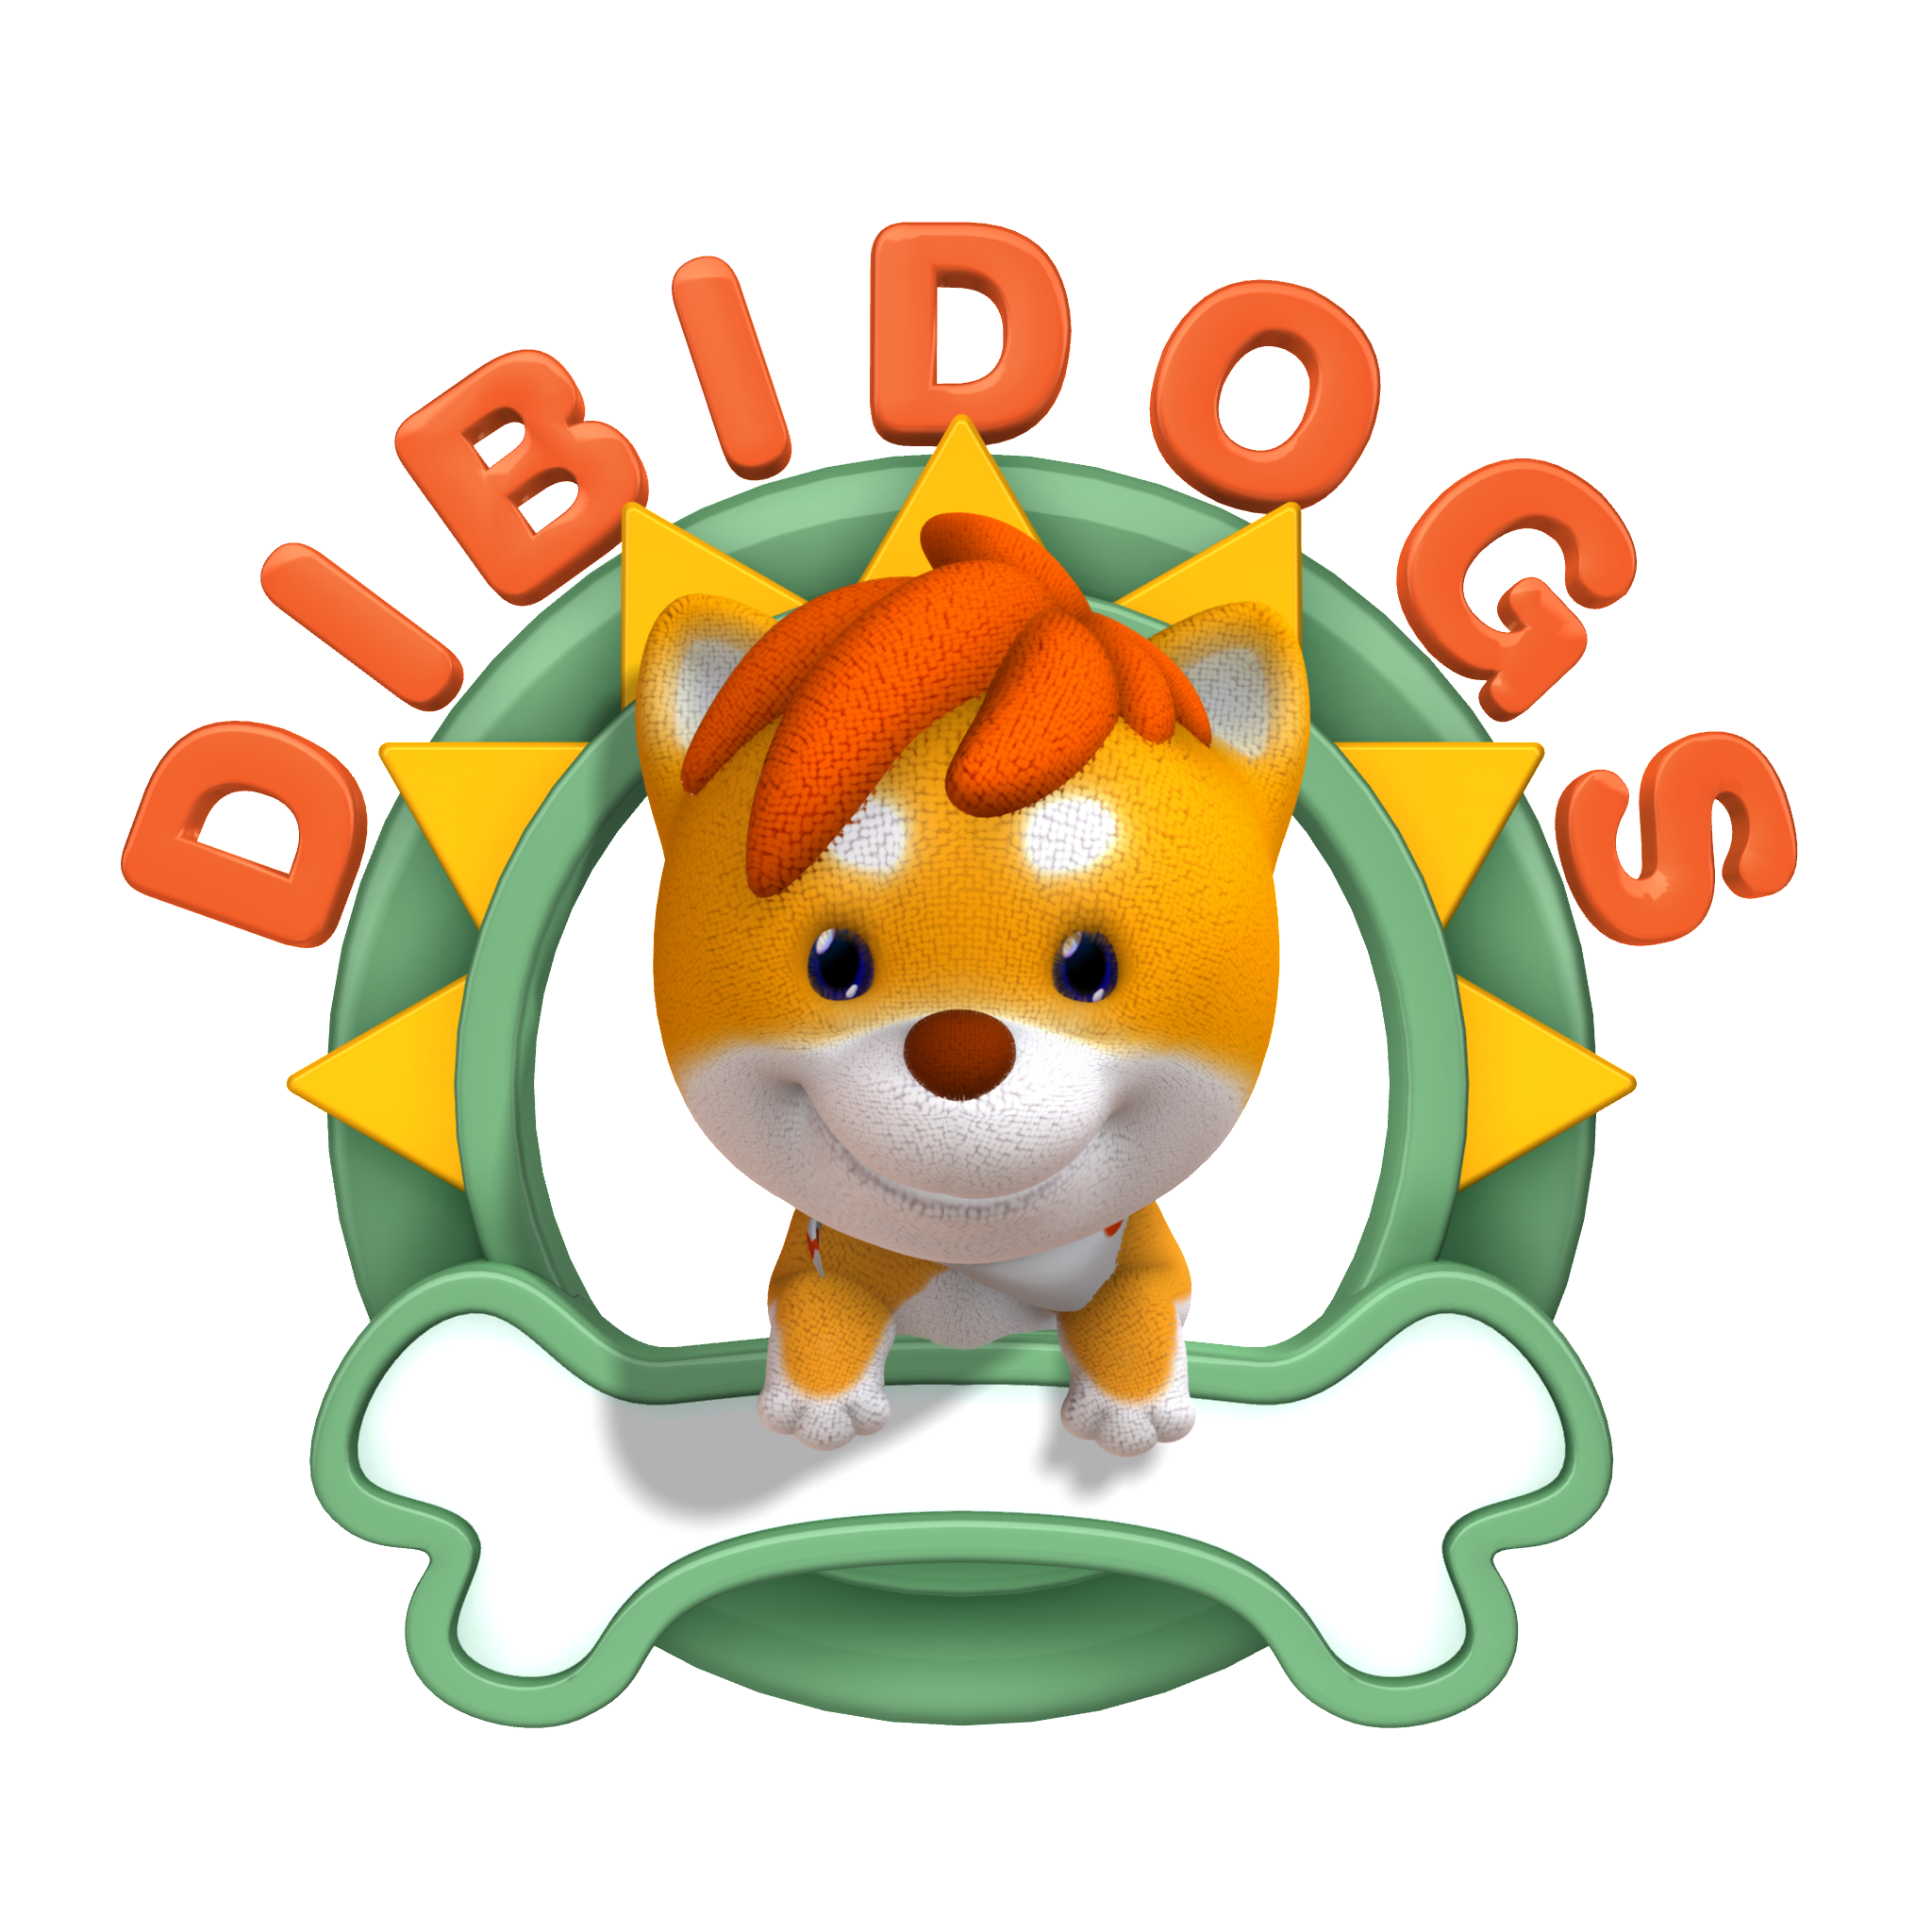 Dibidogs Creative Education creates innovative digital solutions for pre-school children and 1st-2nd graders.